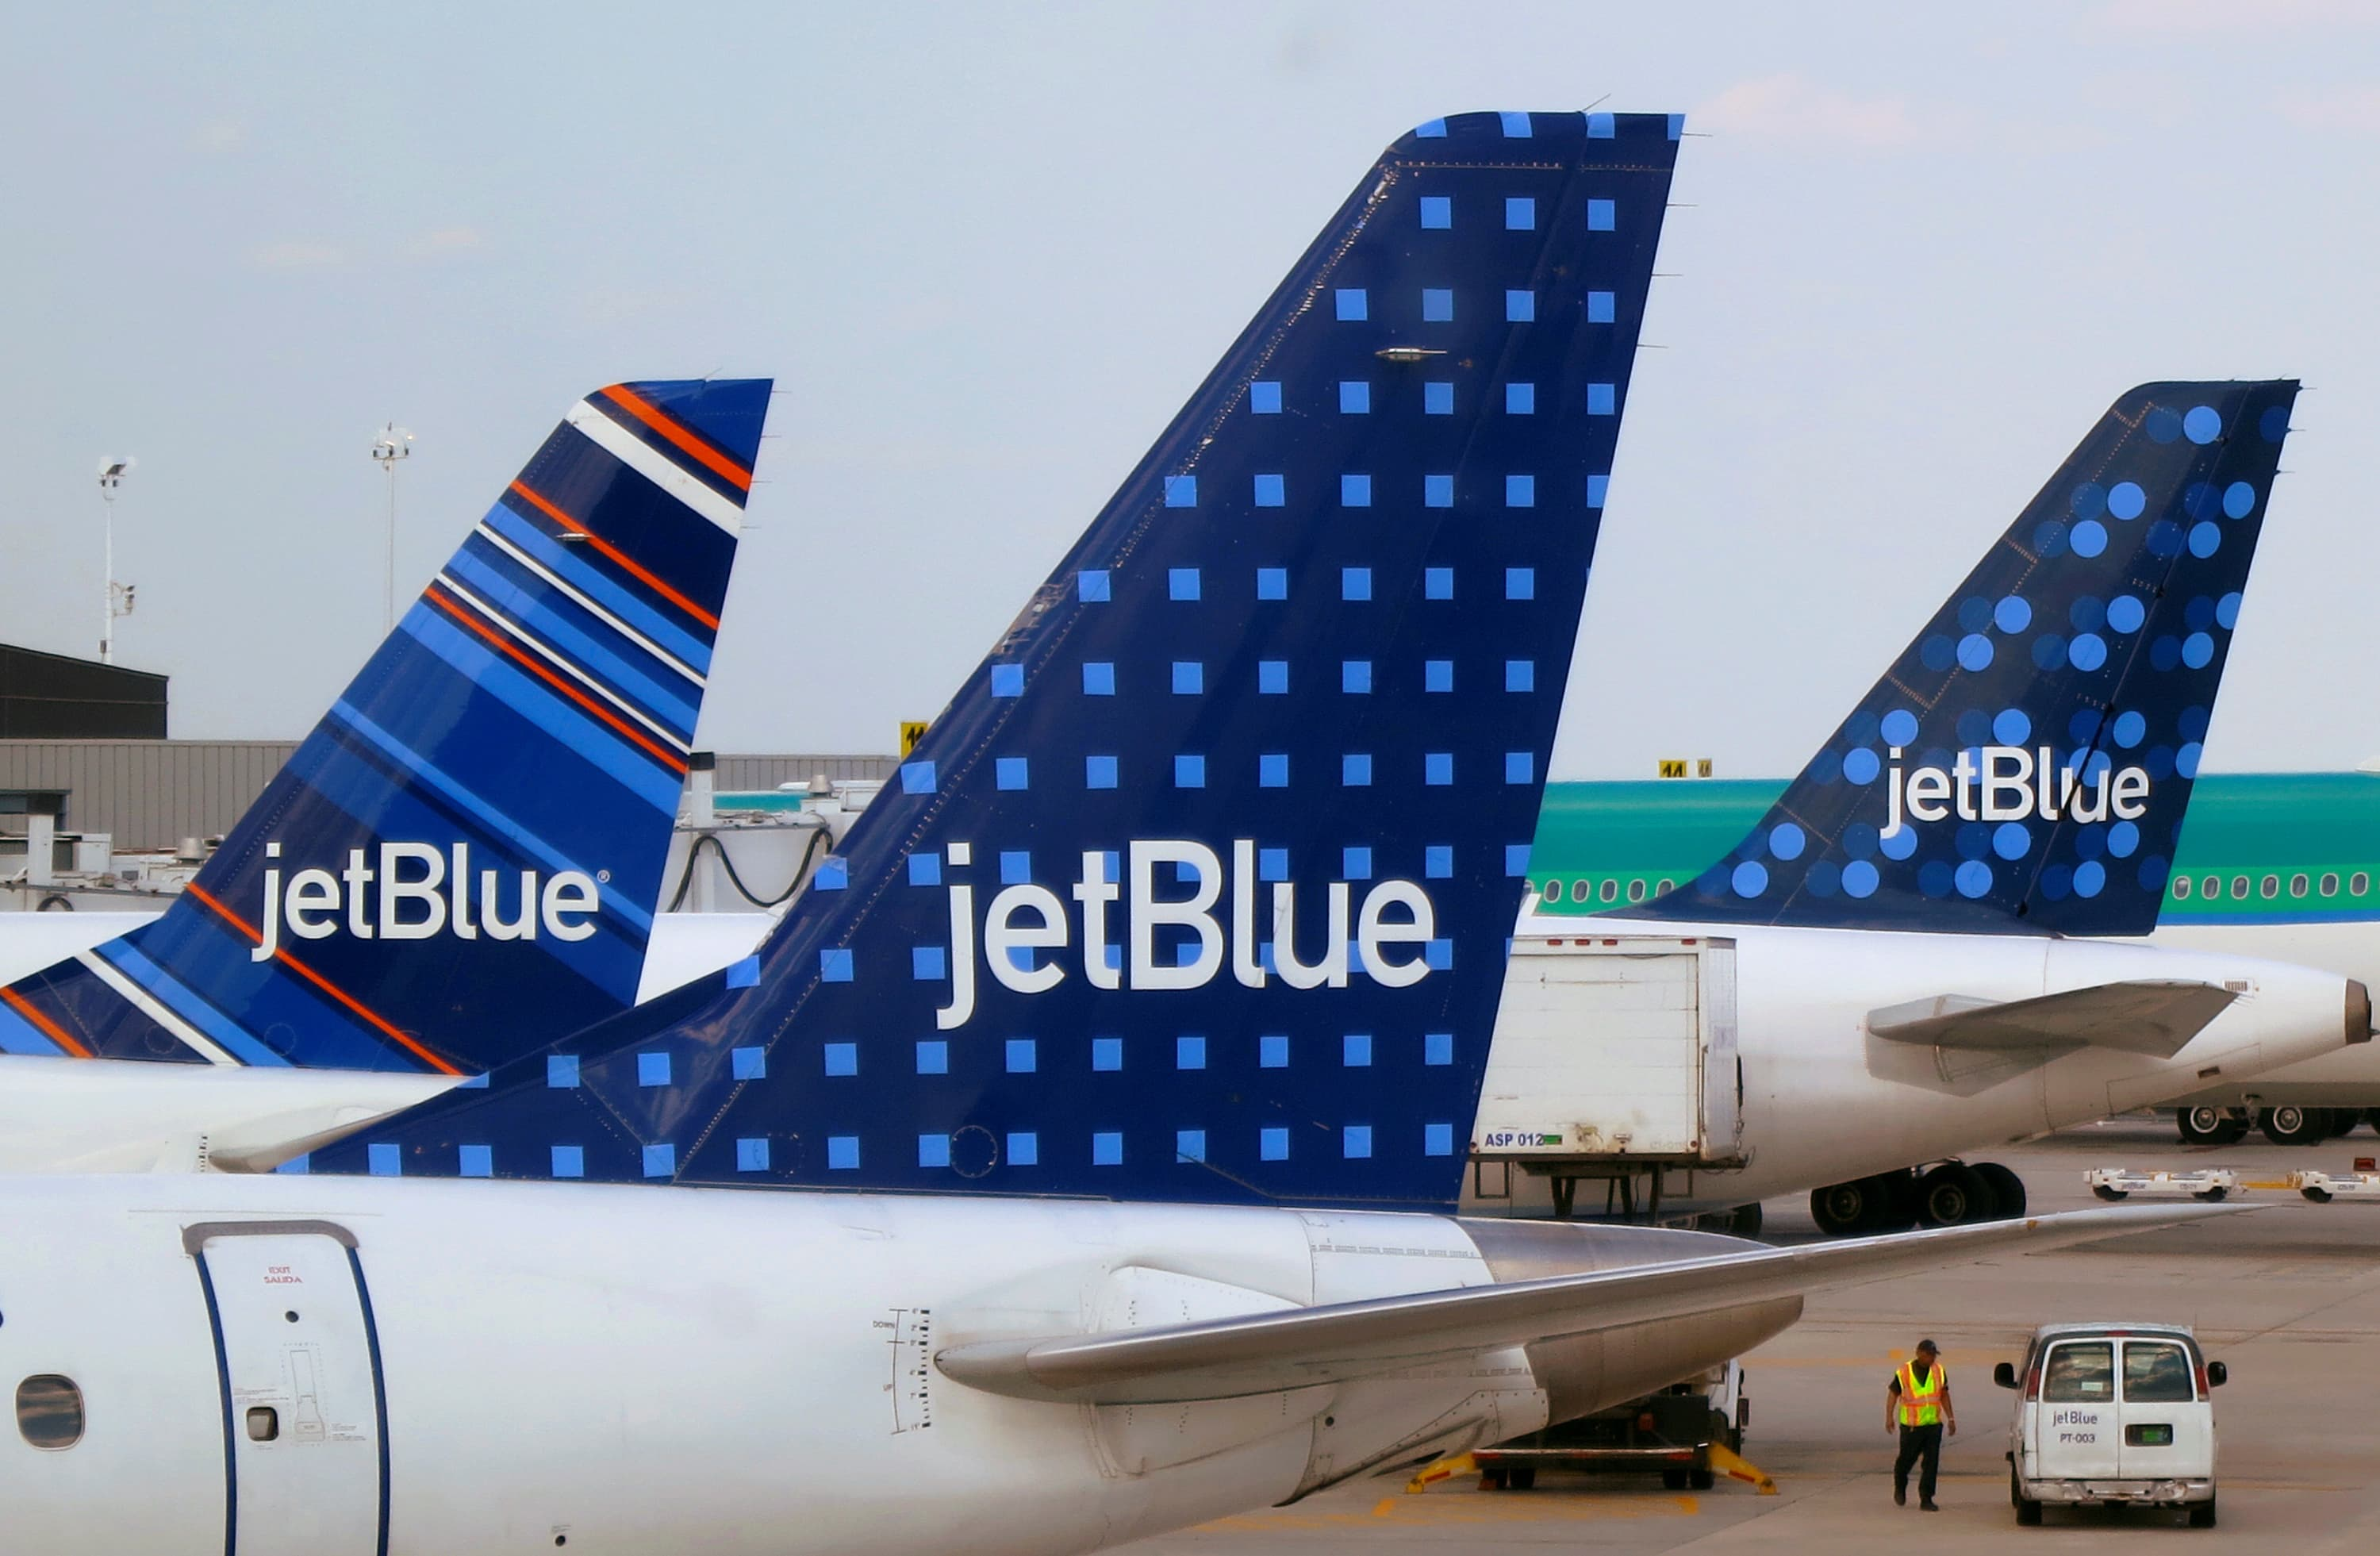 JetBlue scraps ticket-change fees but bans overhead bin access for the cheapest fares